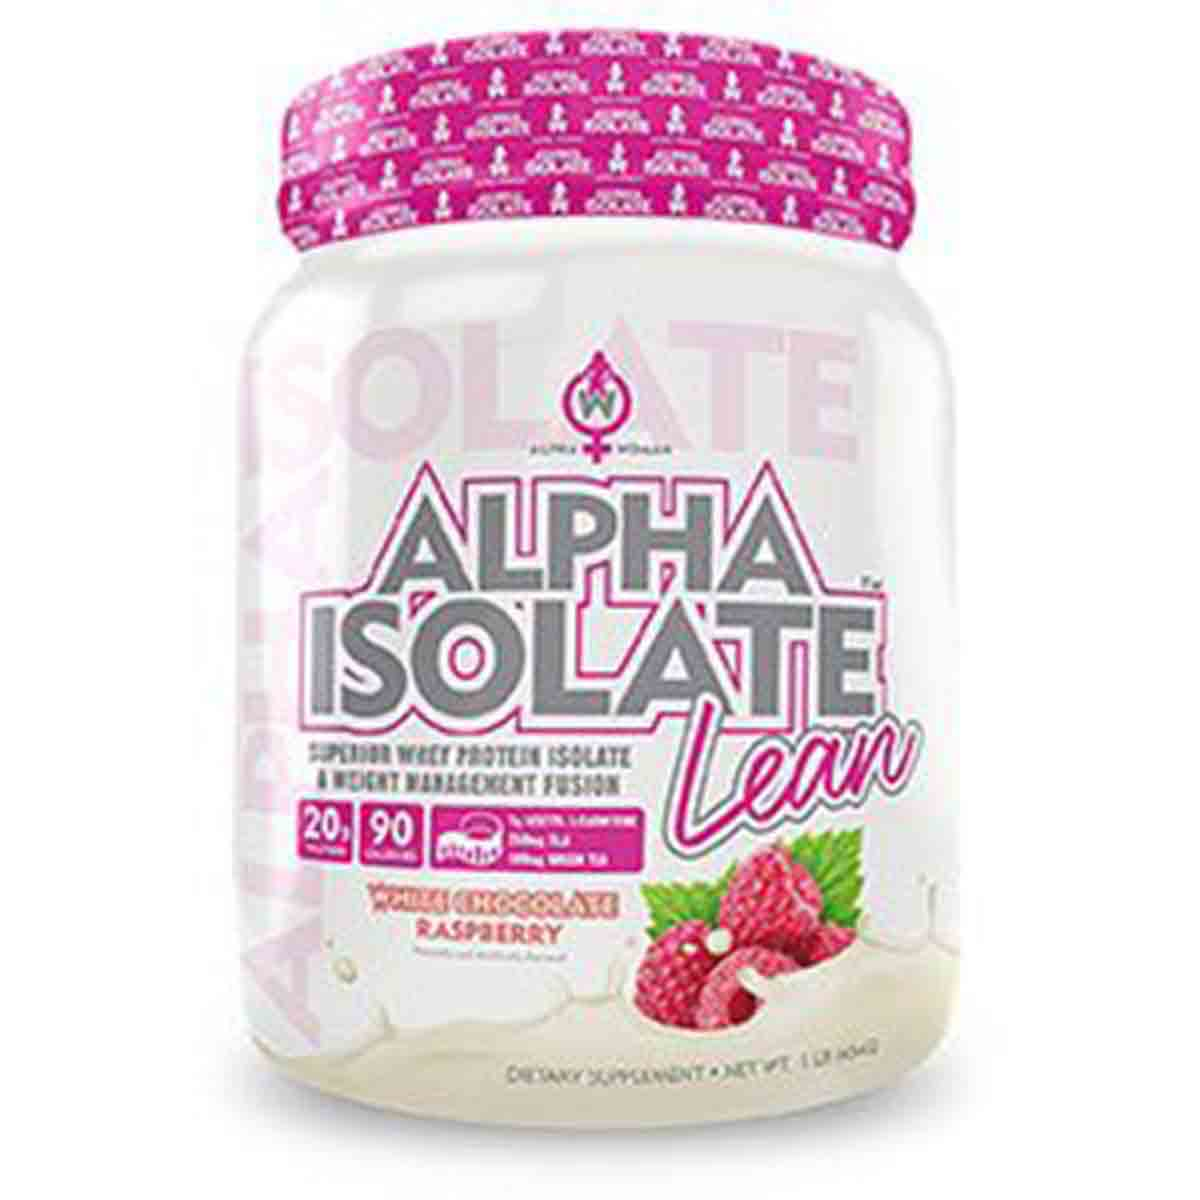 Alpha Isolate Lean